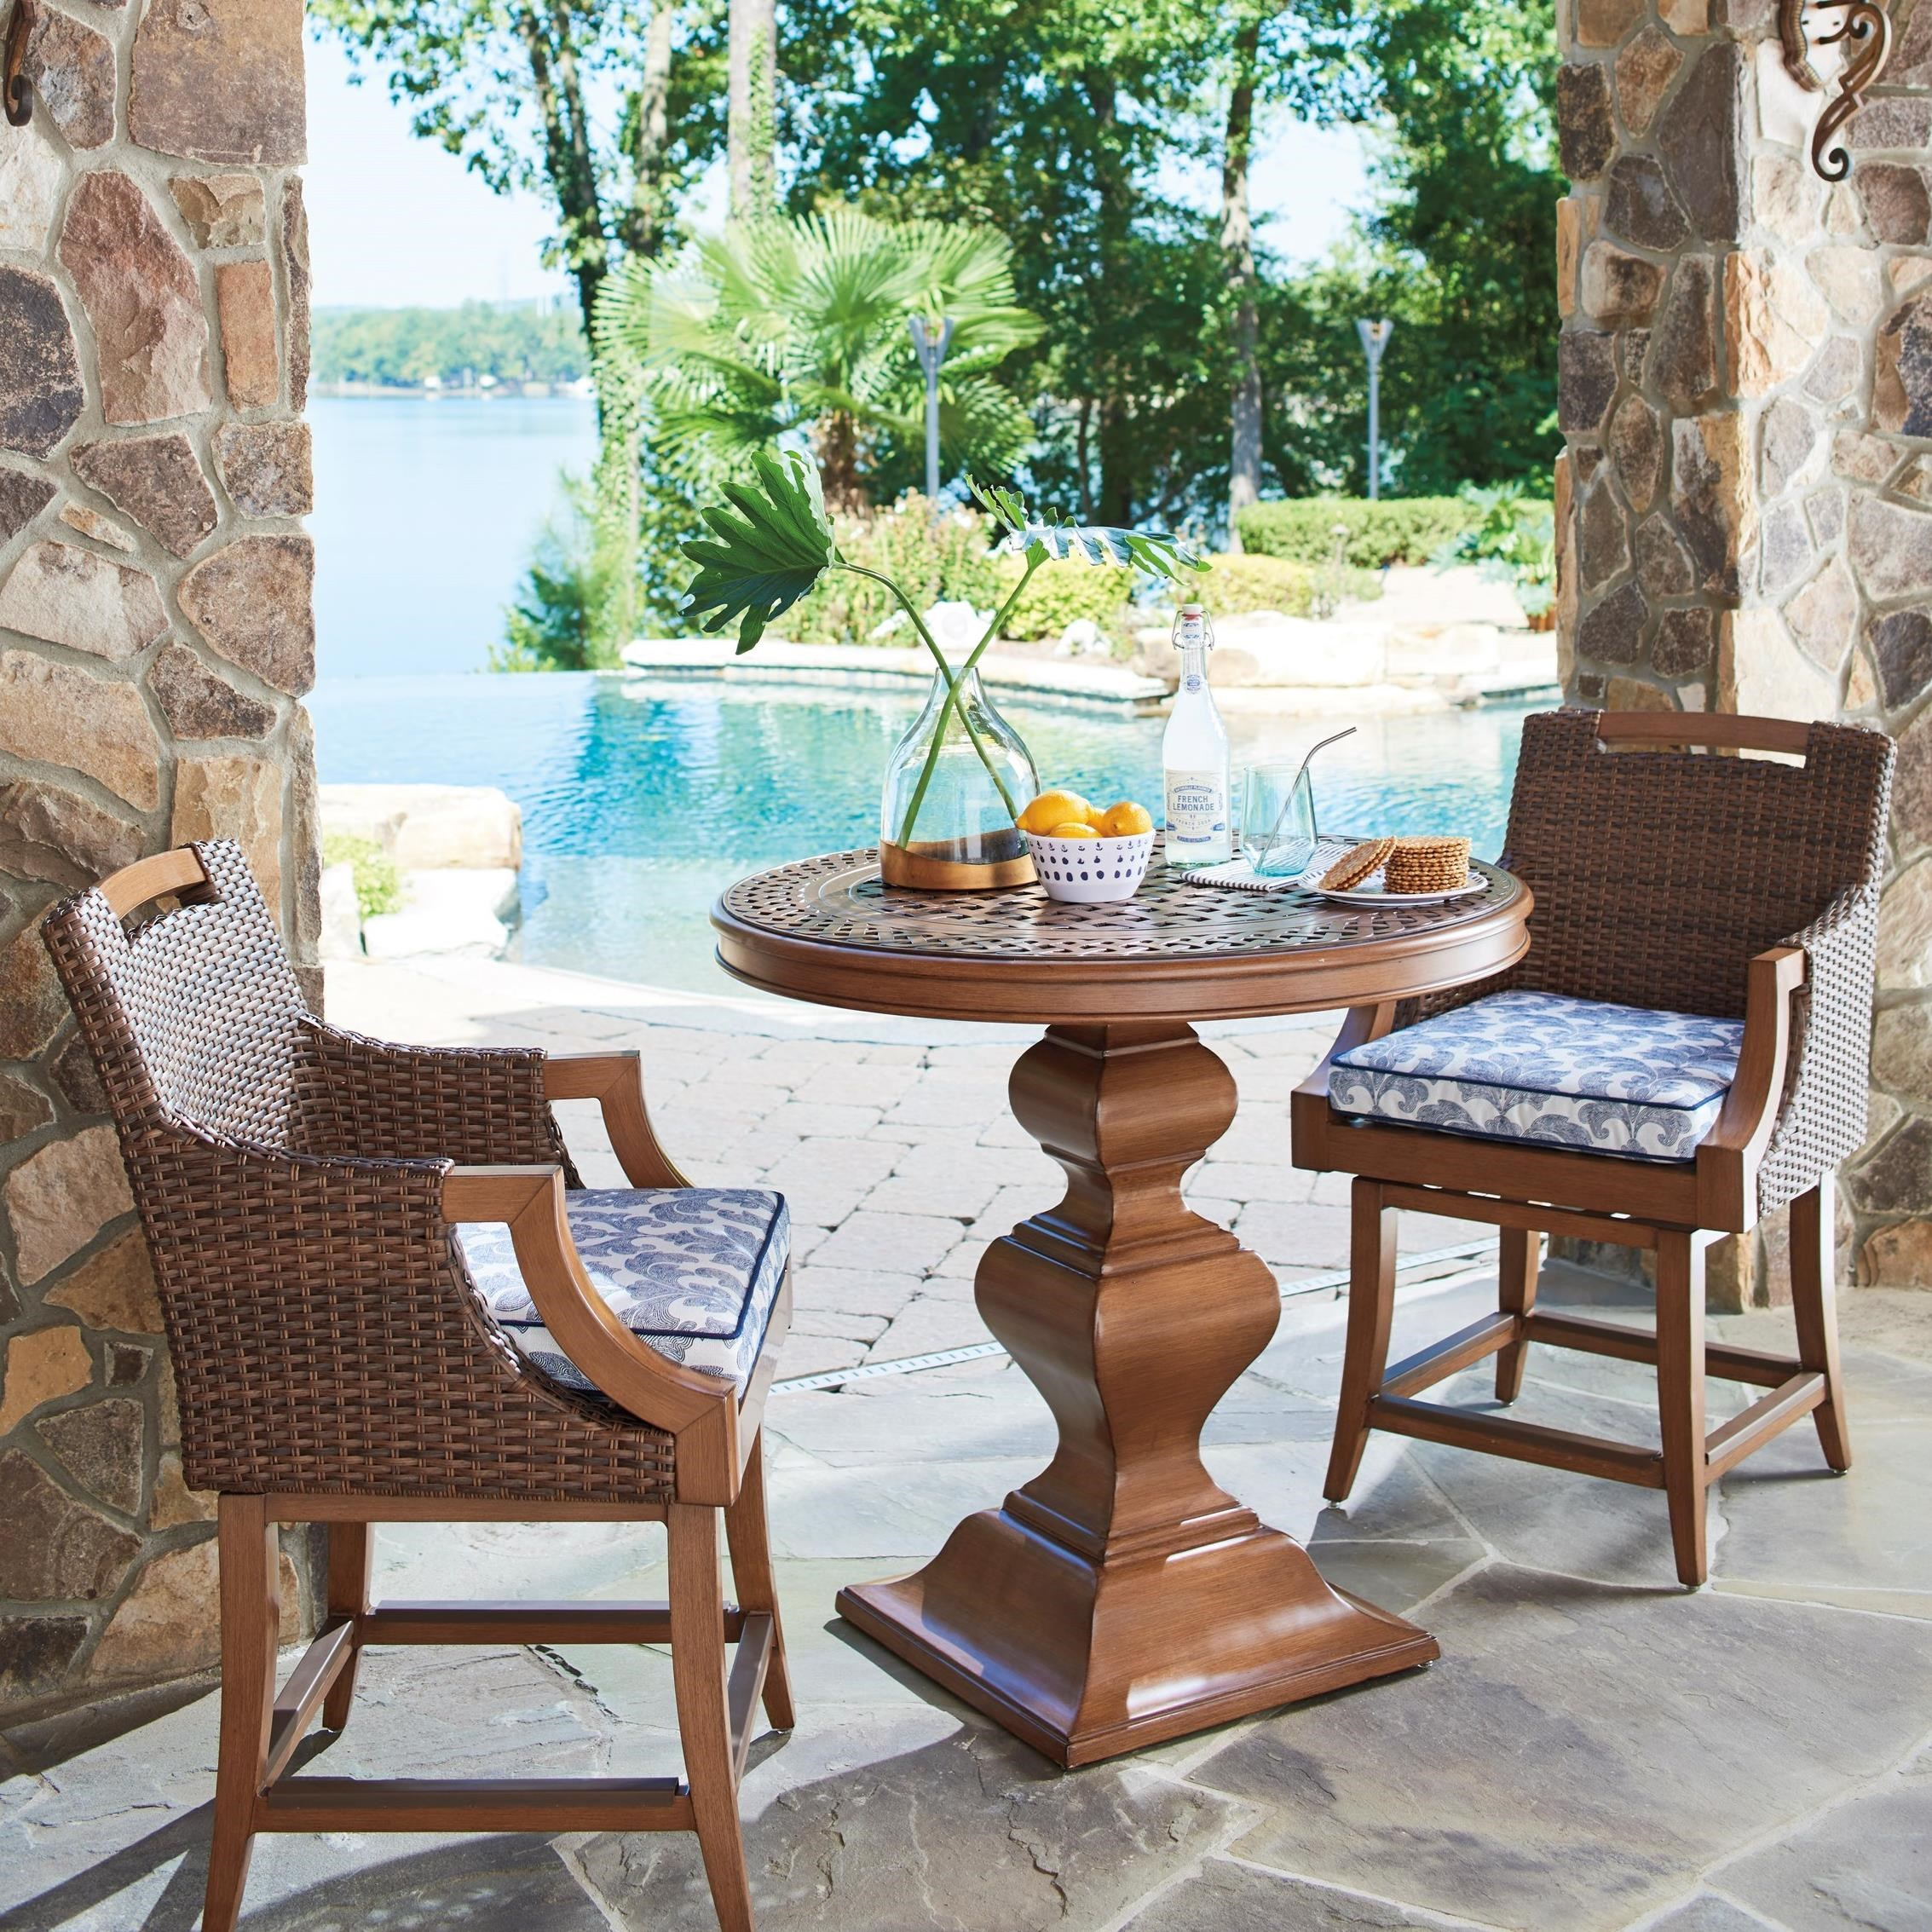 Harbor Isle 3-Piece Outdoor Bistro Set w/ Counter Stools by Tommy Bahama Outdoor Living at Baer's Furniture